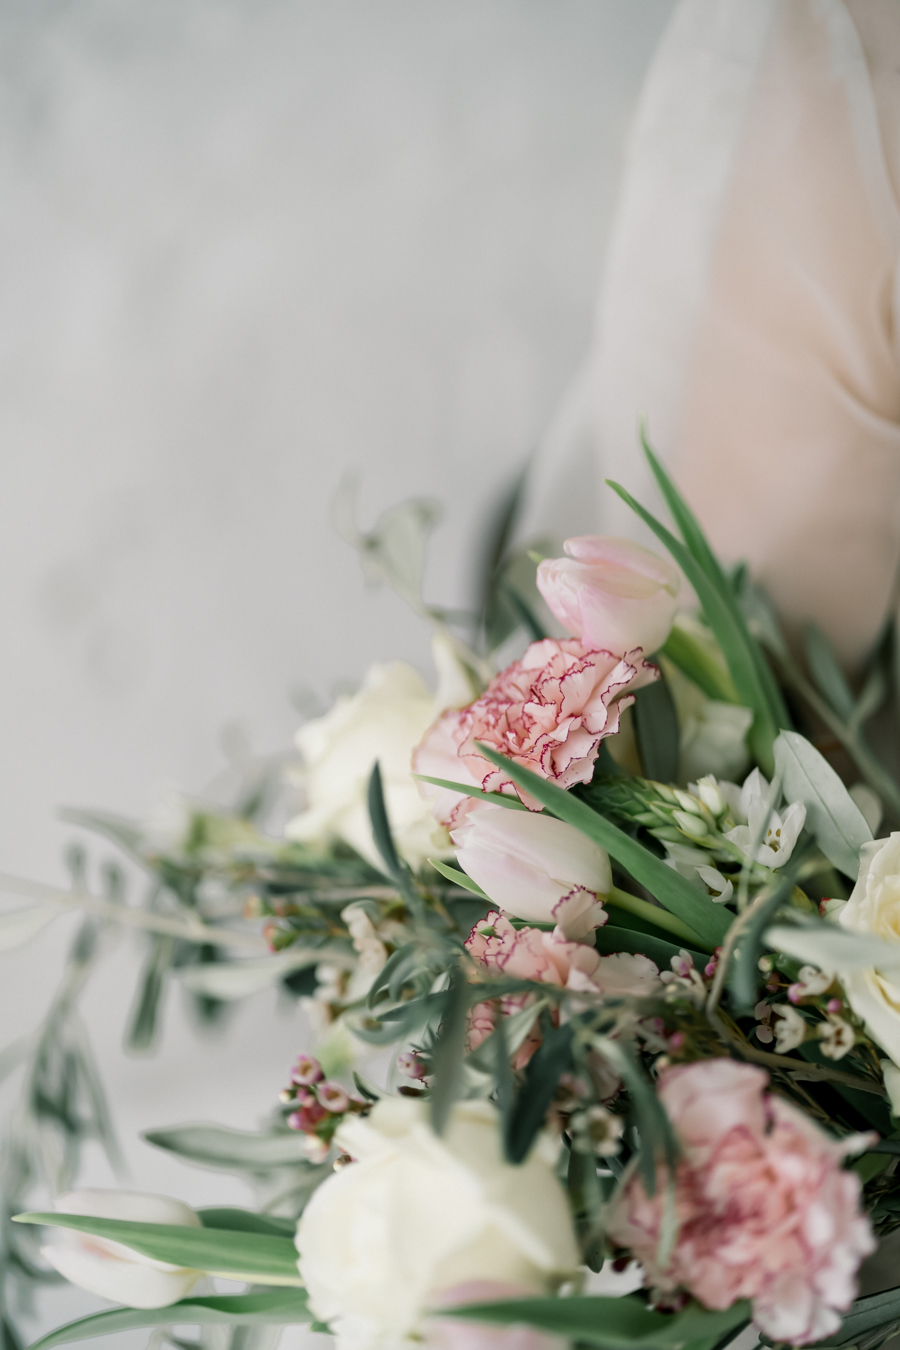 Spring blossom wedding style inspiration and ideas with Chloe Ely Photography at Barton Court (25)